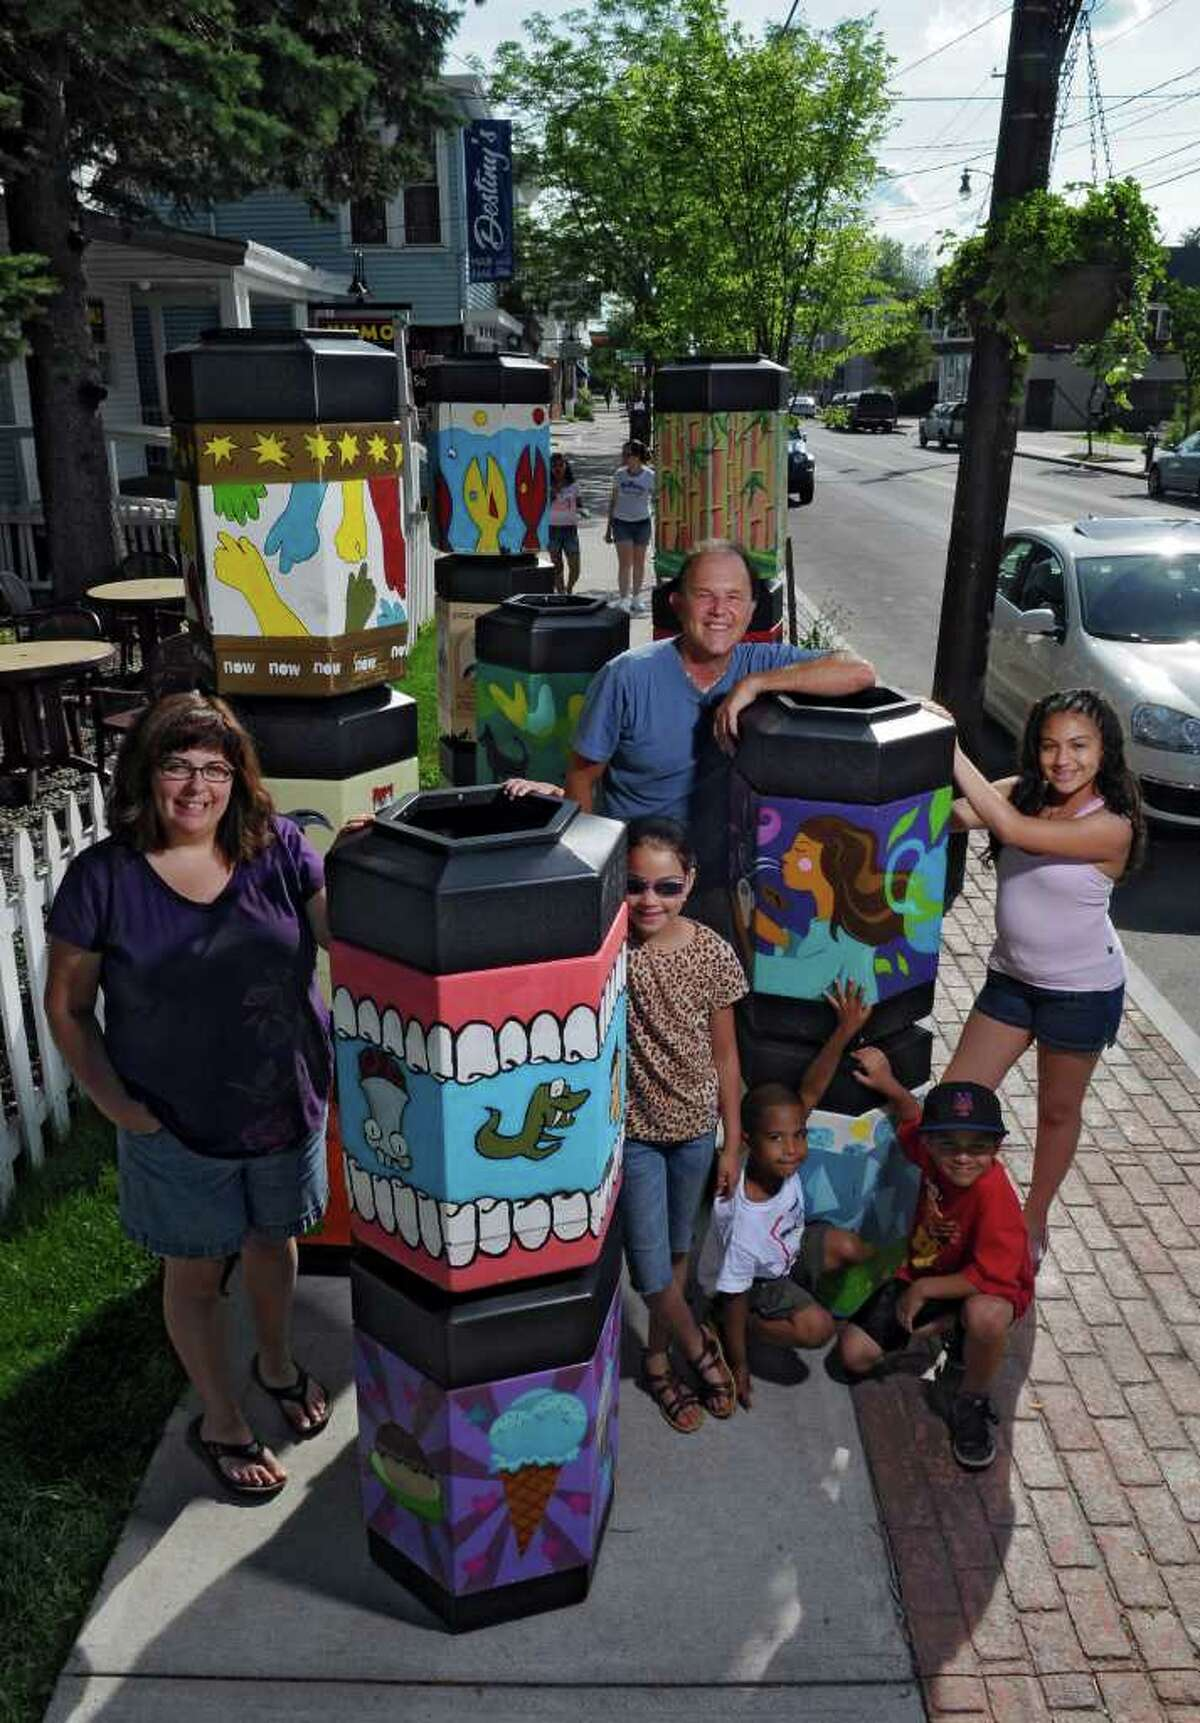 Amy Riddell, owner of Emack & Bolio's, left, and Keith Pickard, co owner of the Spectrum 8 Theatres and the Ultraviolet Cafe, center, stand near 20 new garbage cans painted by artists and commissioned by the Delaware Avenue Merchants Group that will be placed on the avenue later this week, on Monday June 28, 2011 in Albany, NY. Joining Amy and Keith are Yesenia Rios, 9, left, her brother Noel Molina, 5, left in white shirt, and their cousins Tony Stella, 7, lower right, and his sister Naomi Stella, 11, all of Albany and who live nearby. They were walking by at the time of the photograph.( Philip Kamrass / Times Union)